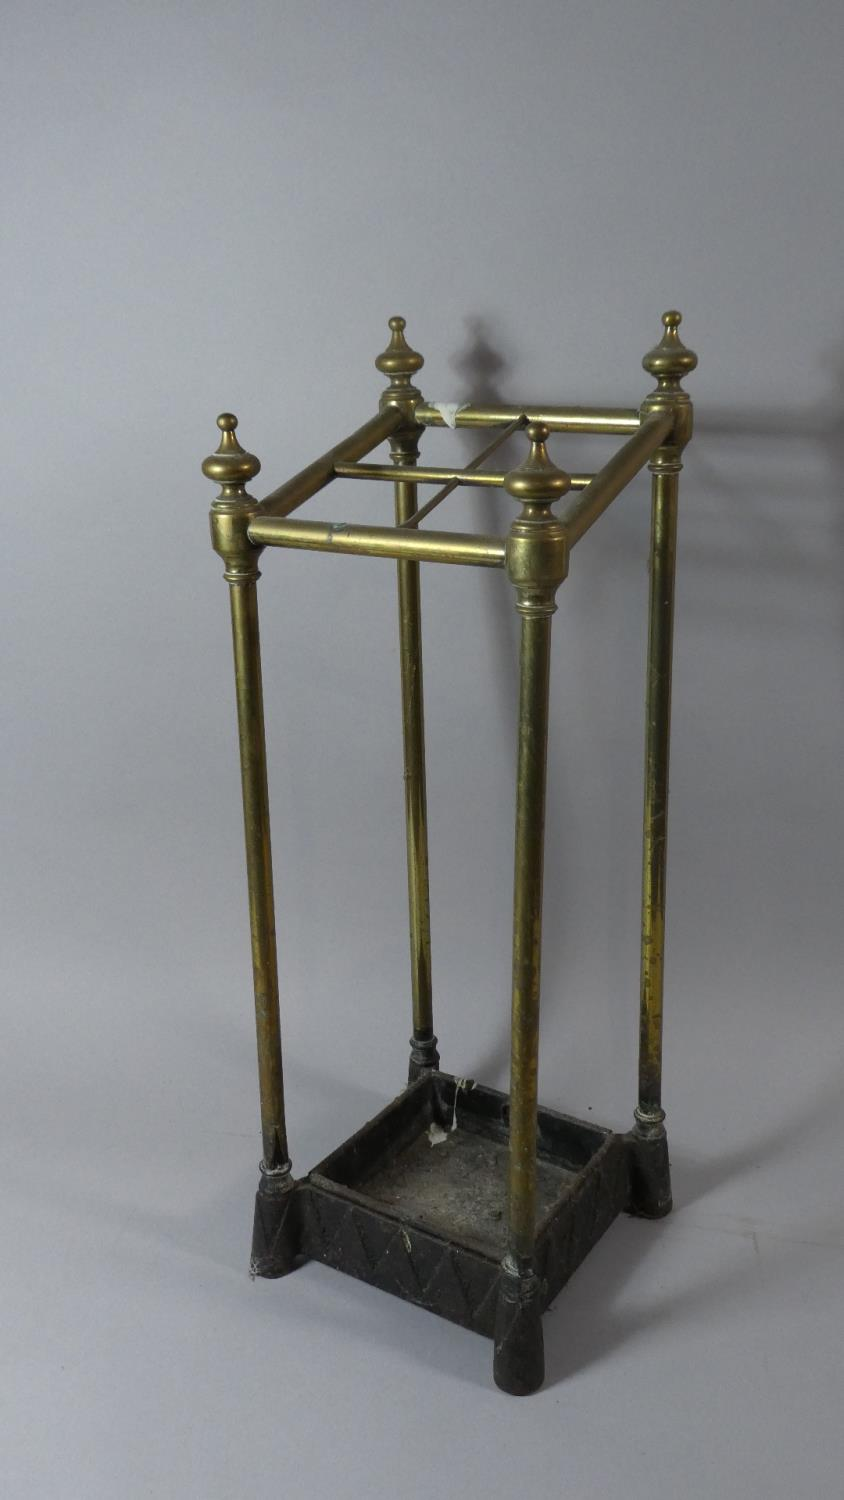 Lot 34 - A Late Victorian Brass Four Division Stick Stand with Original Drip Tray, 62cm High